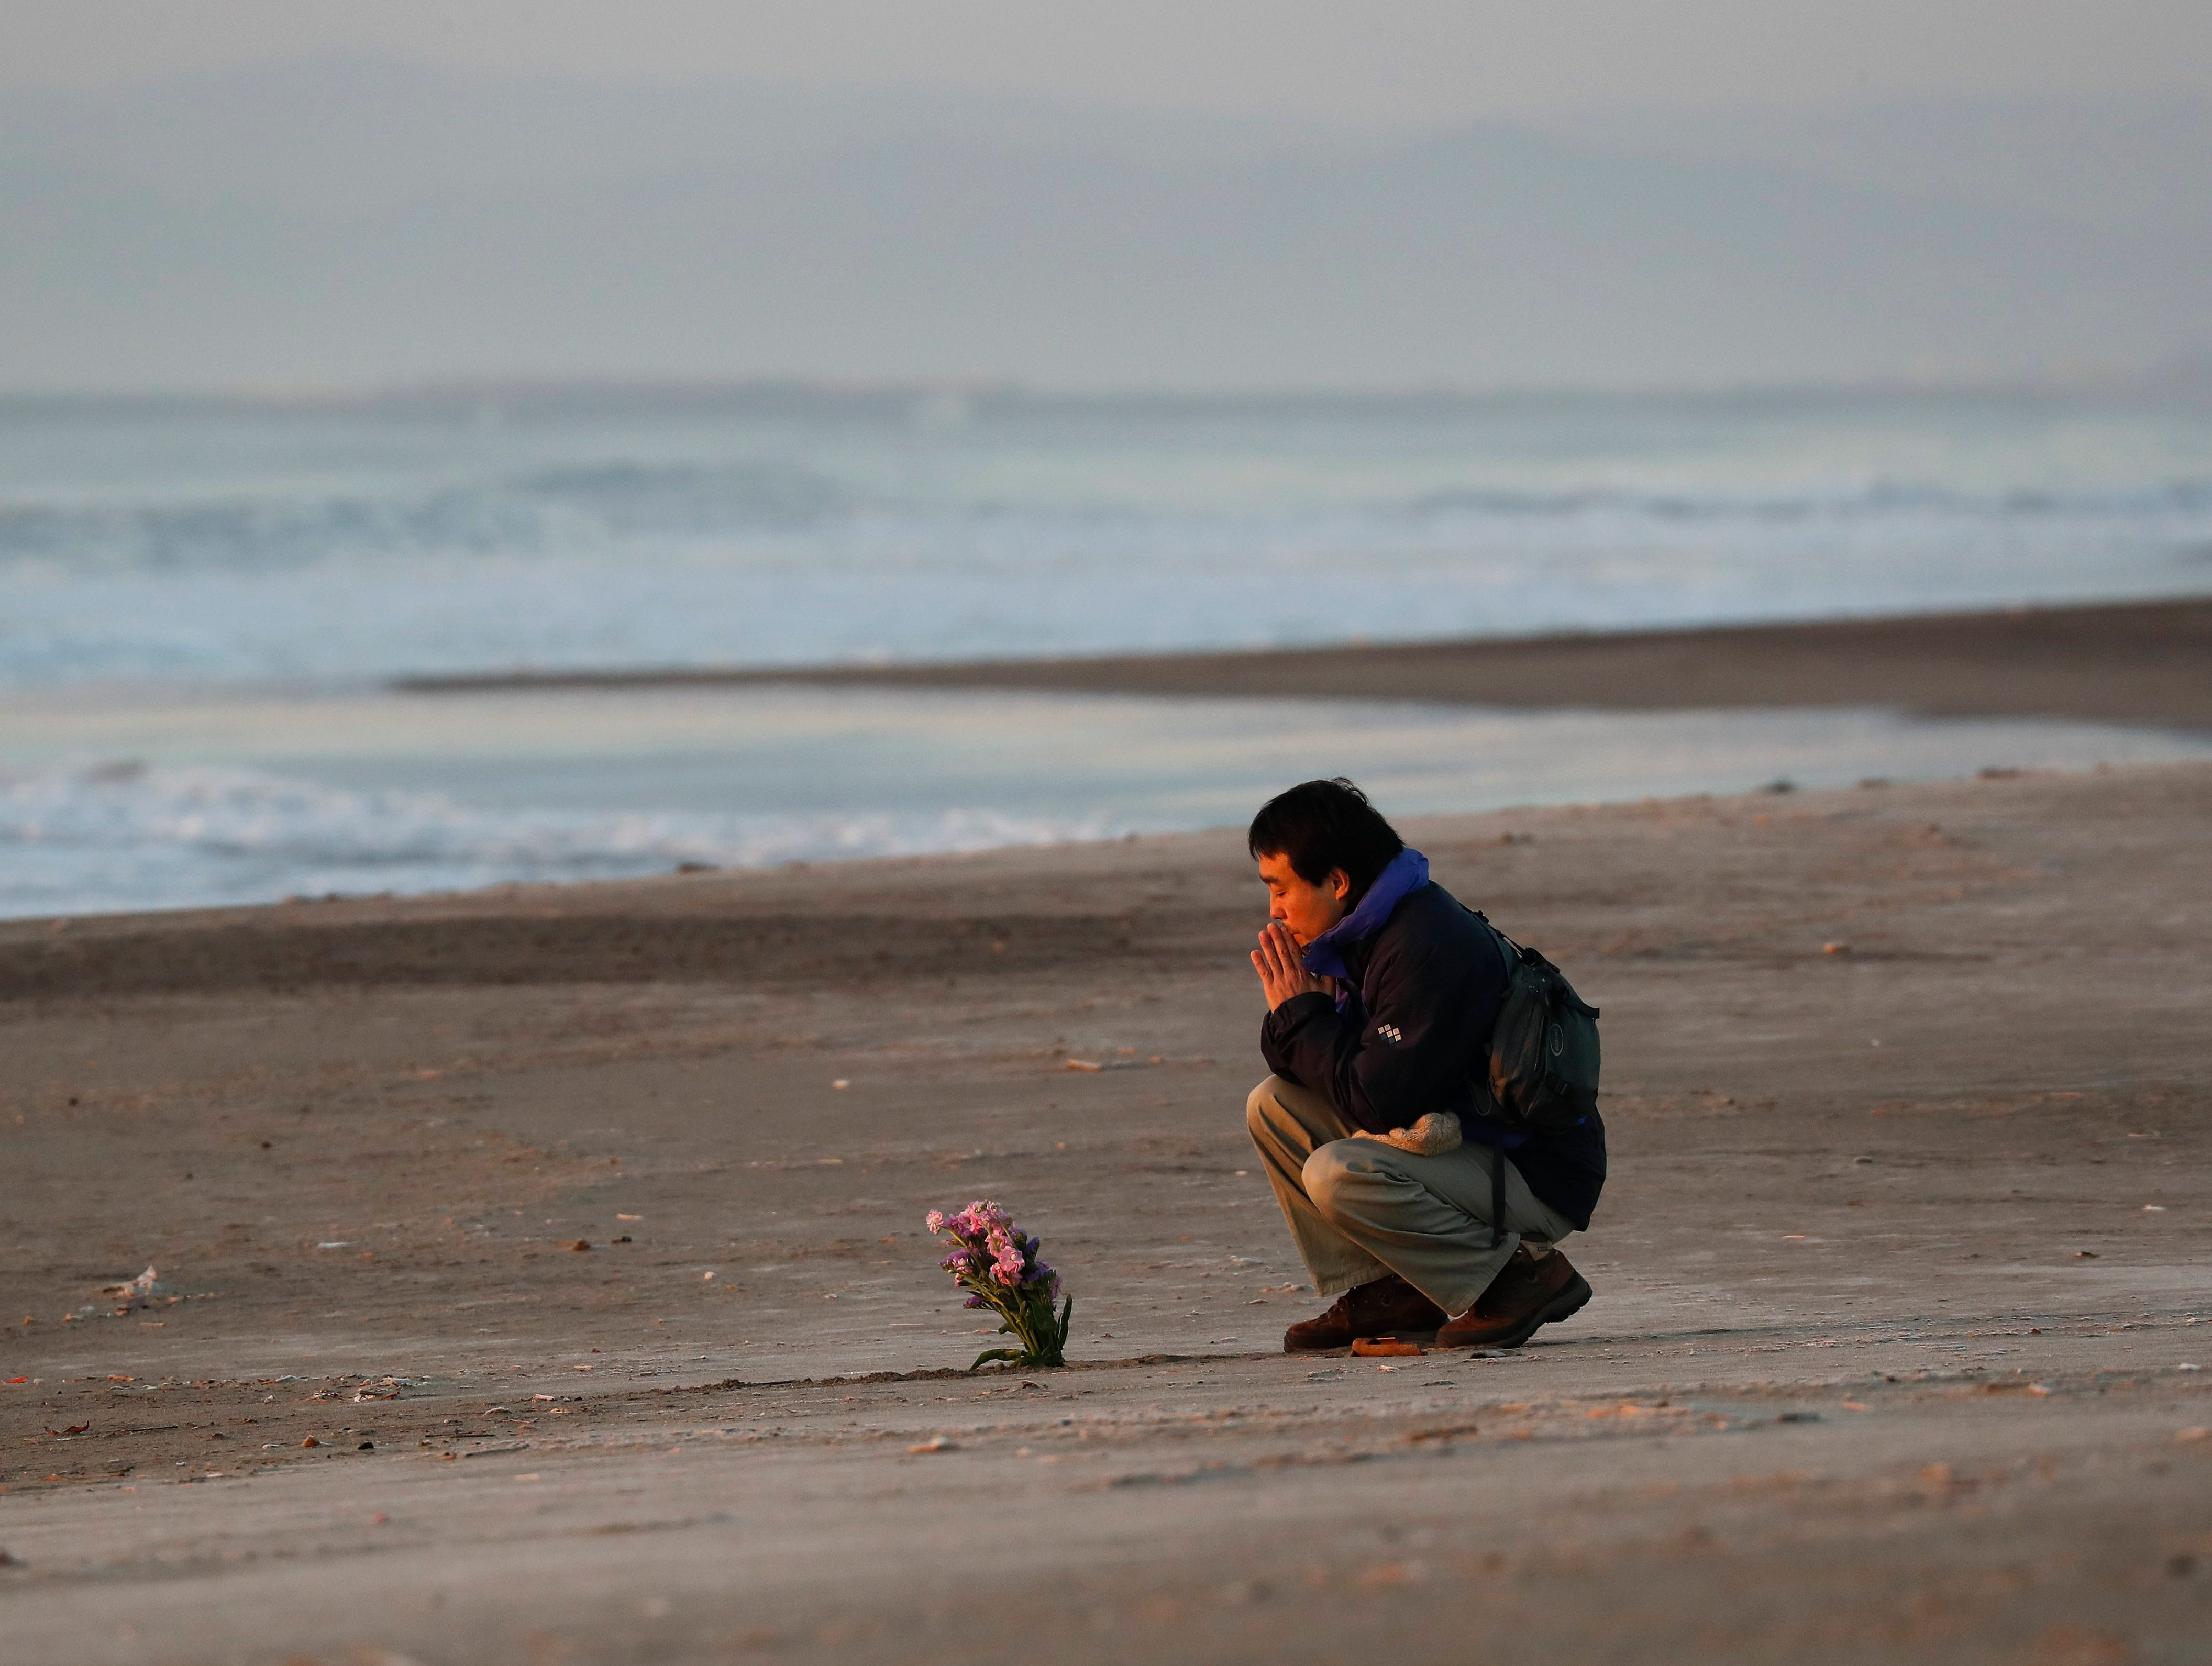 March 11, 2018: A man offers a prayer on Arahama Beach in Sendaii, Miyagi Prefecture, Japan during the seventh anniversary of the 9.0-magnitude earthquake and subsequent tsunami, that devastated northeastern Japan and triggered a nuclear disaster at Tokyo Electric Power Company's Fukushima Daiichi Nuclear Power Plant.